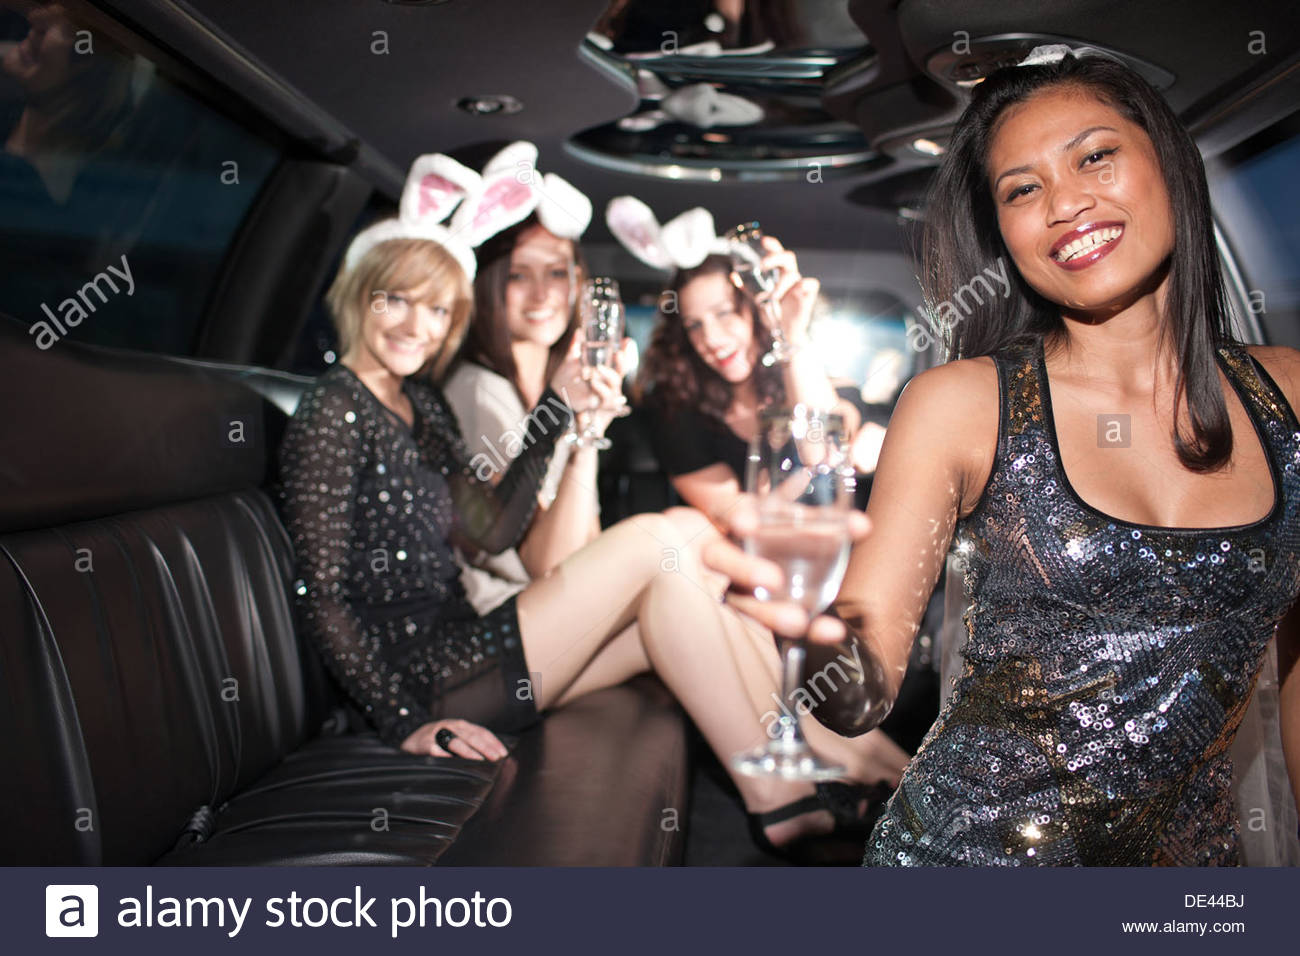 Woman drinking champagne in limo Photo Stock